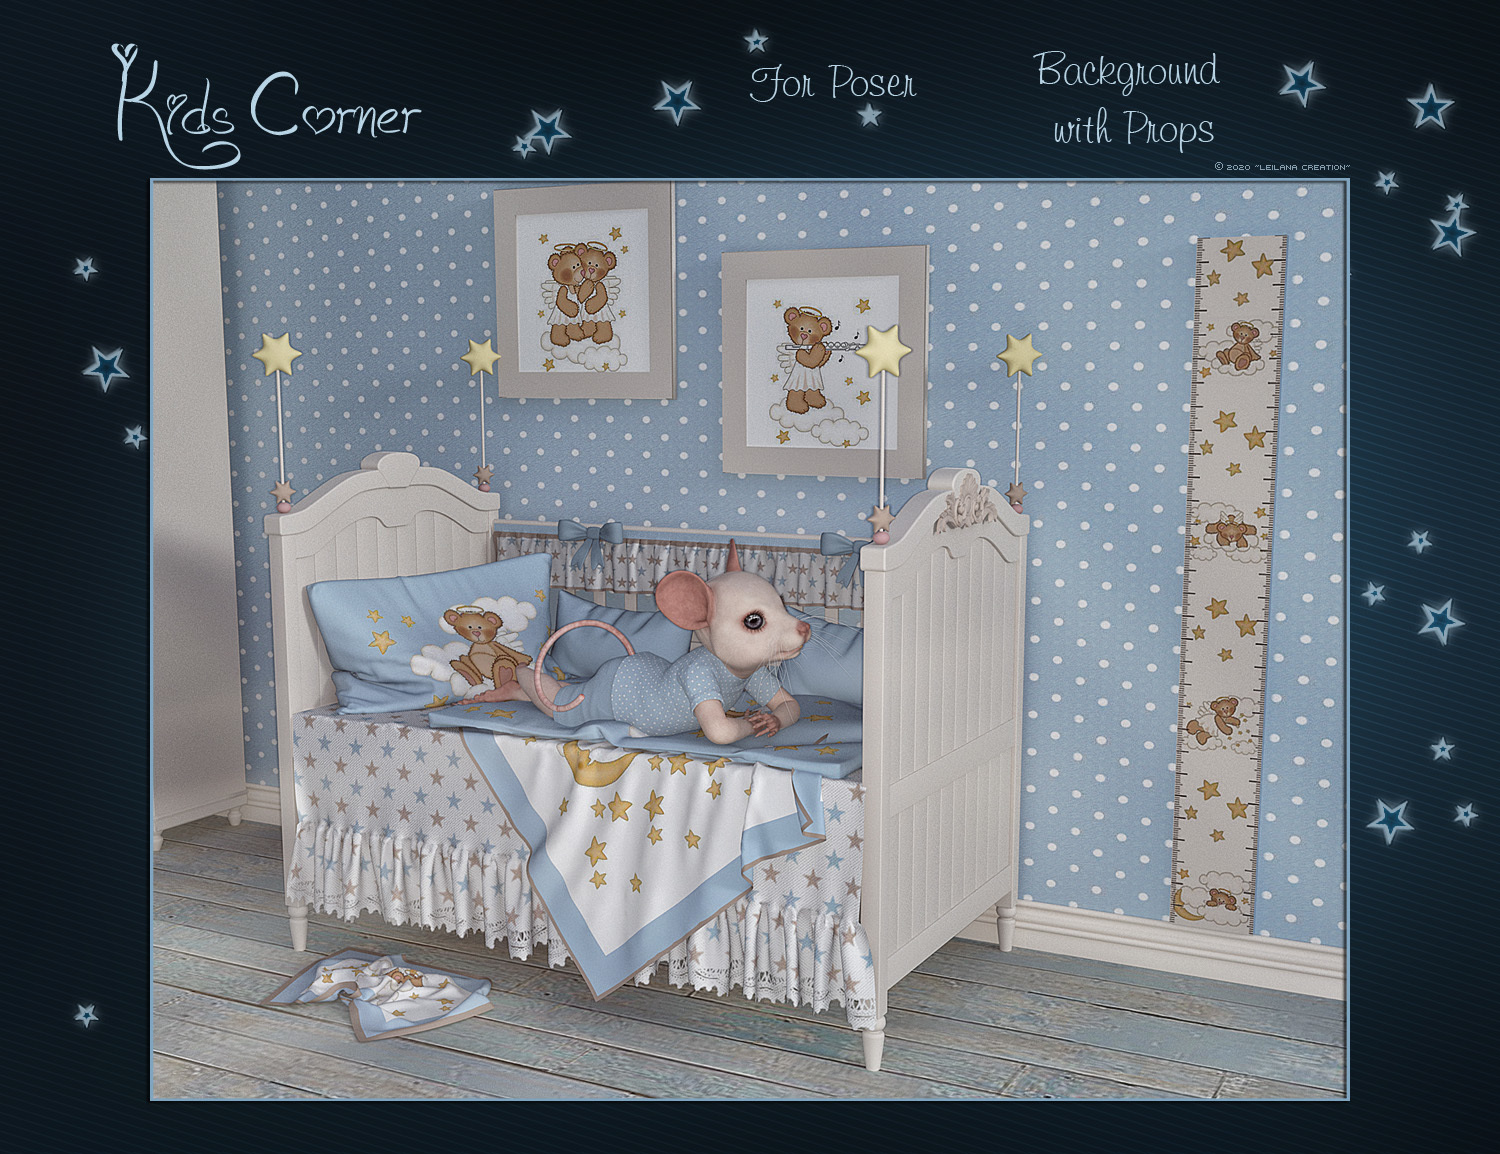 Kids Corner for Poser by Leilana